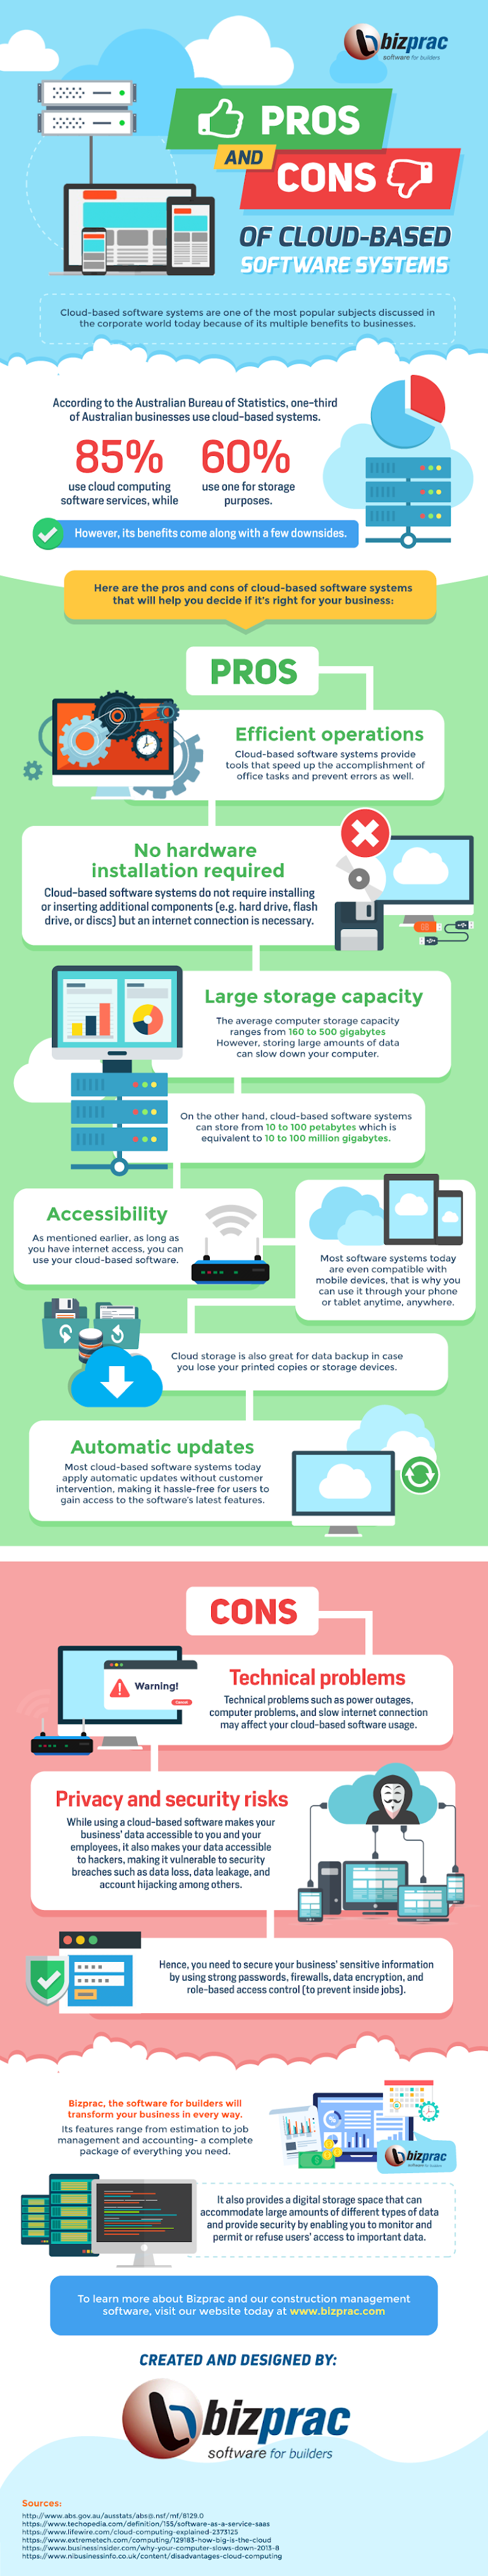 The Pros and Cons of Cloud-based Software Systems #infographic #Business #Cloud based Software #infographics #Software Systems #Infographic #Security